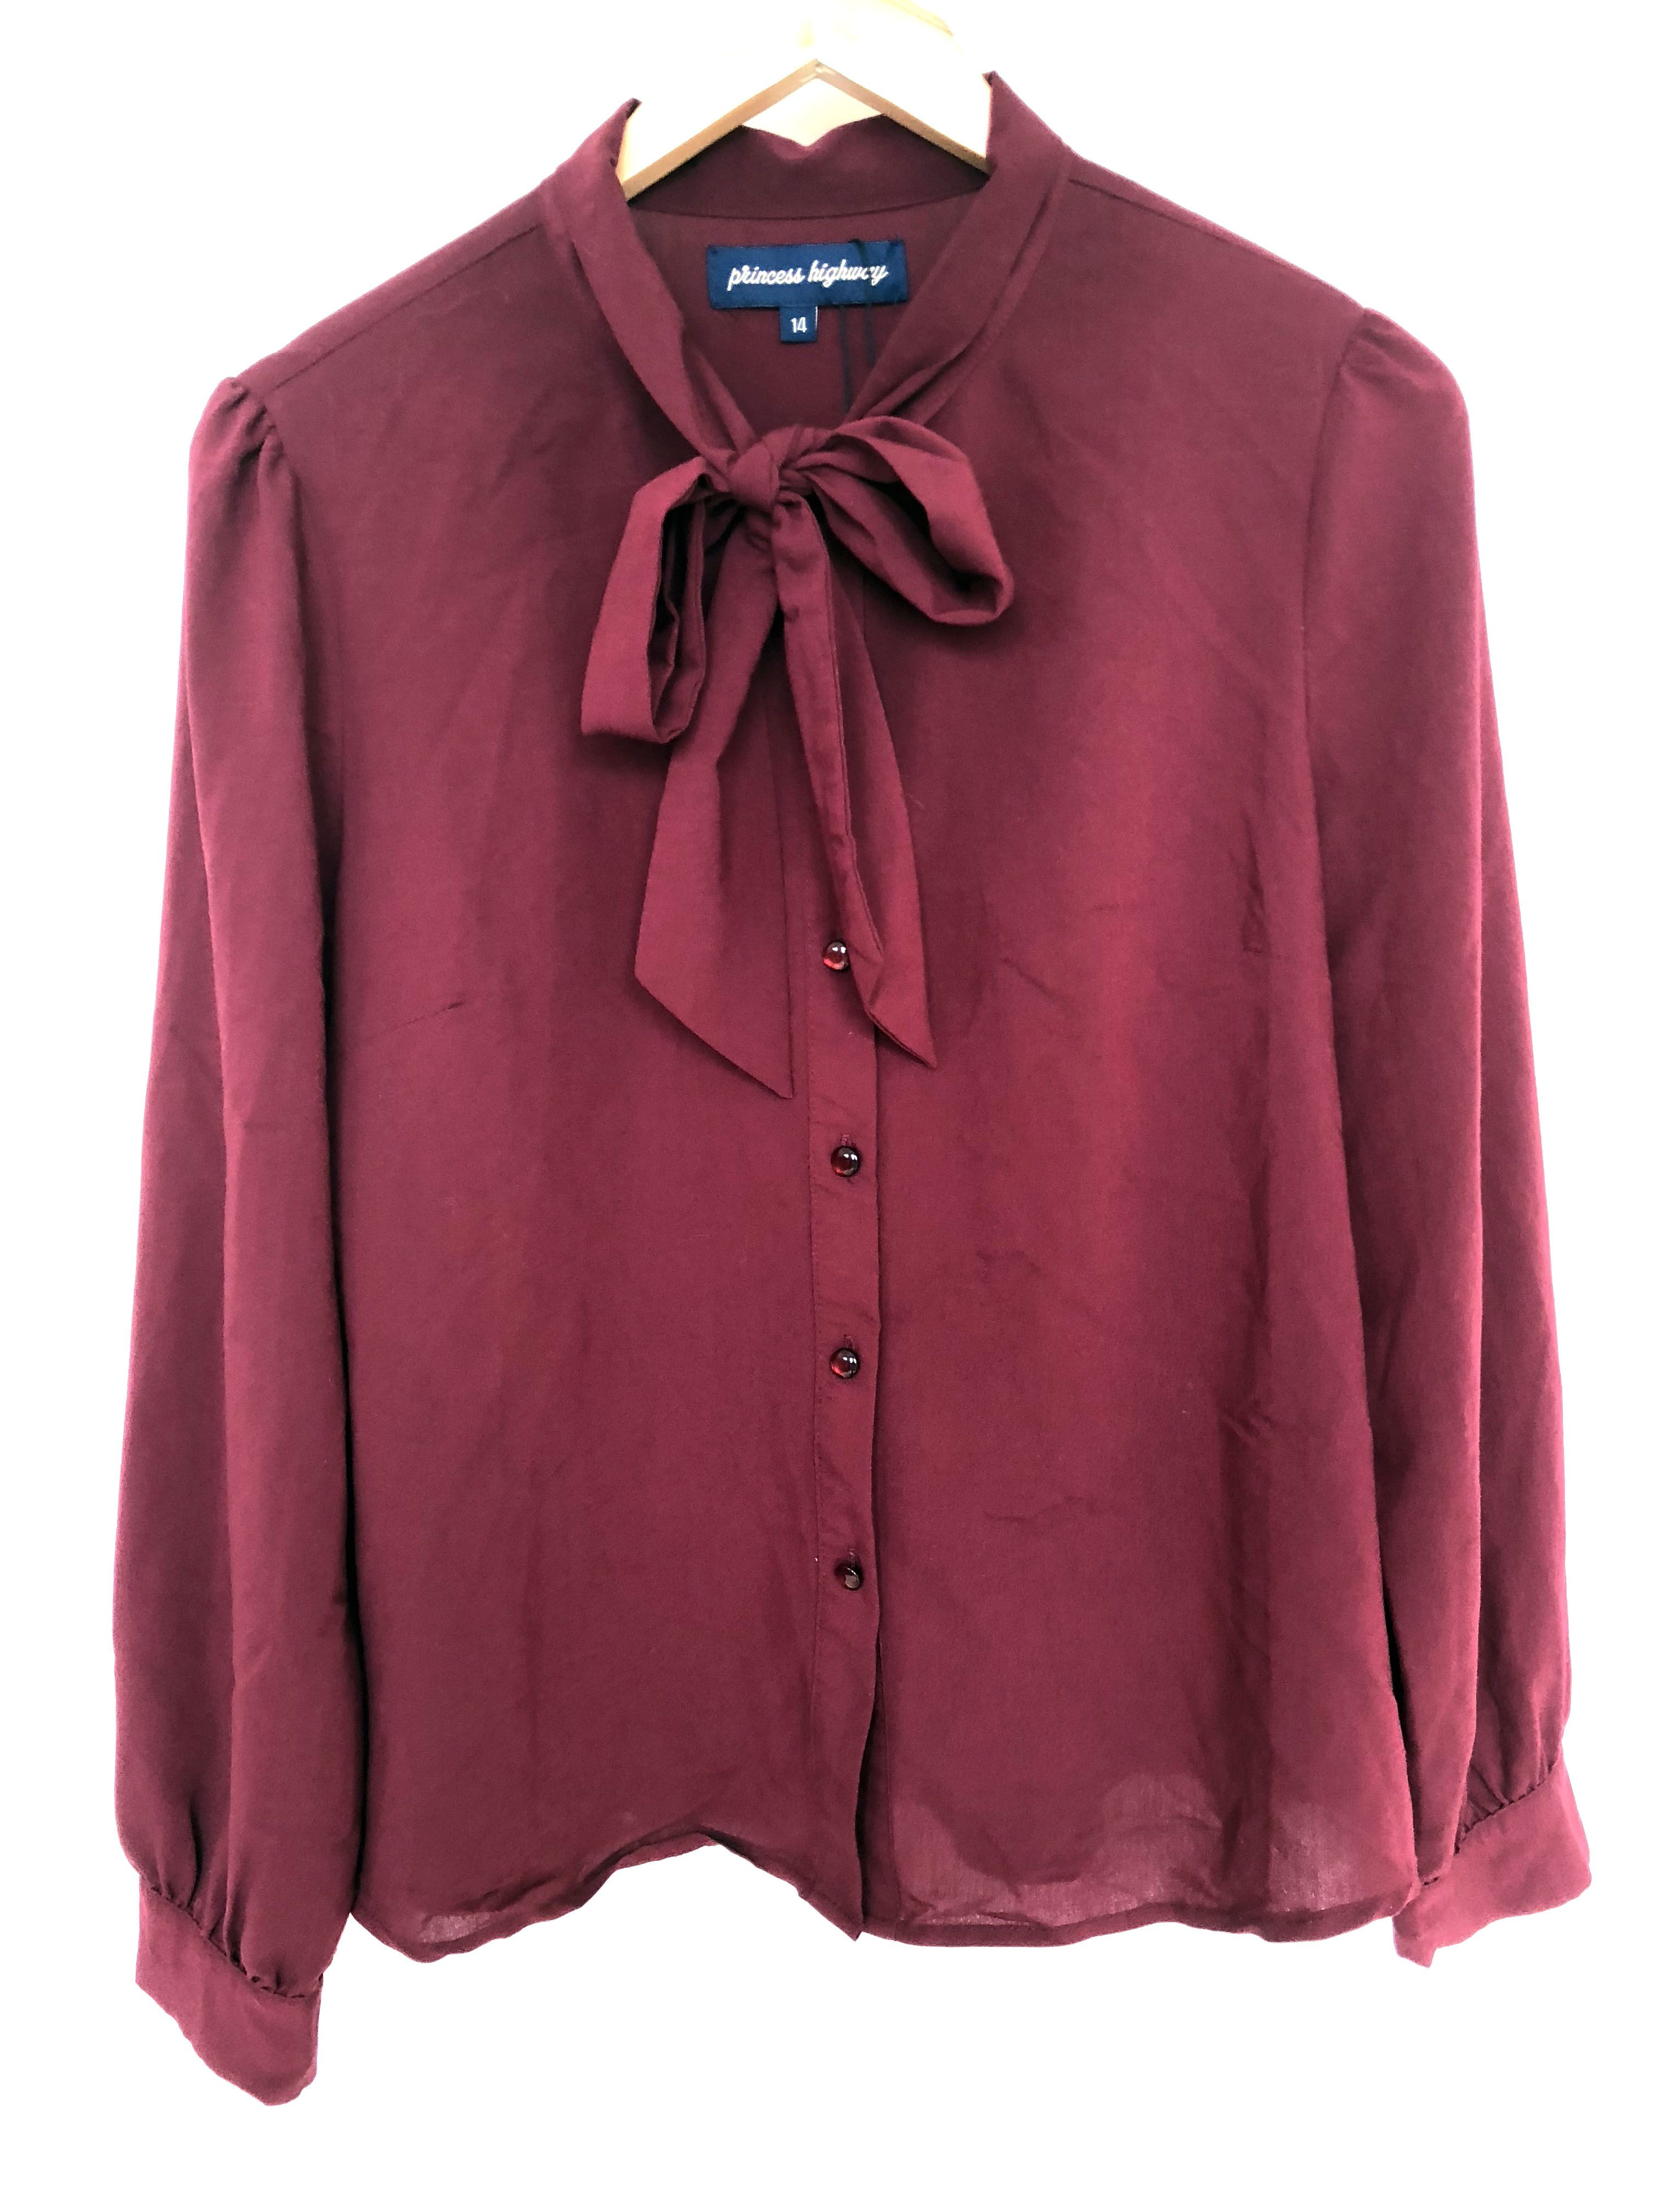 c3ae05fed PRINCESS HIGHWAY Ladies - Size 14 - Maroon Red Button Up Blouse with Tie  Neck